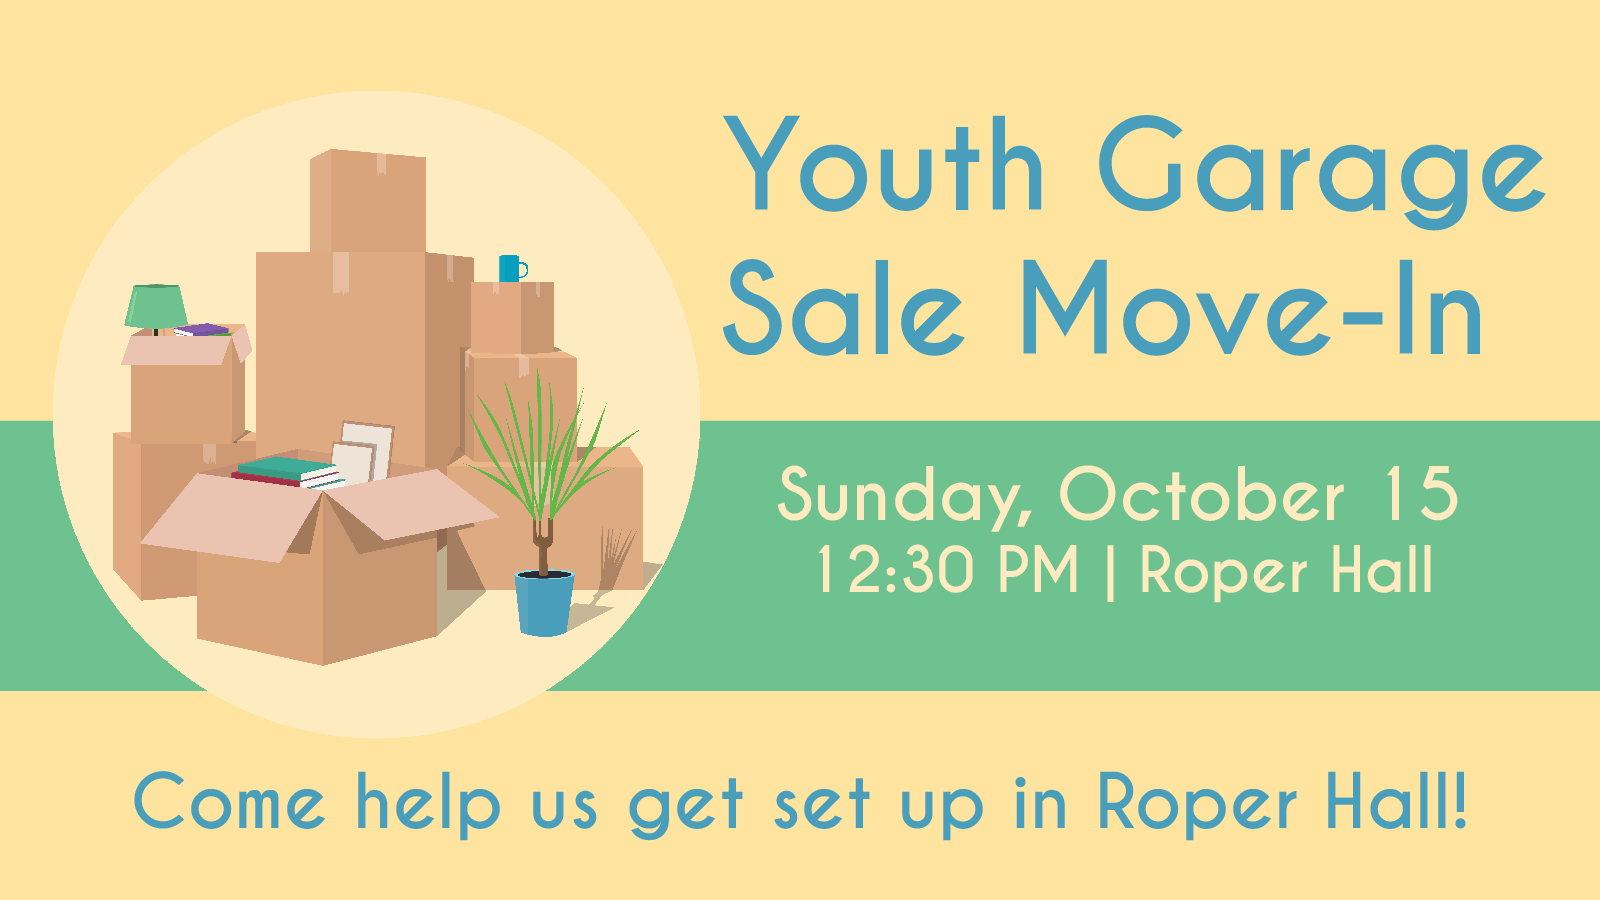 Youth Garage Sale Move-In – Episcopal Church of the